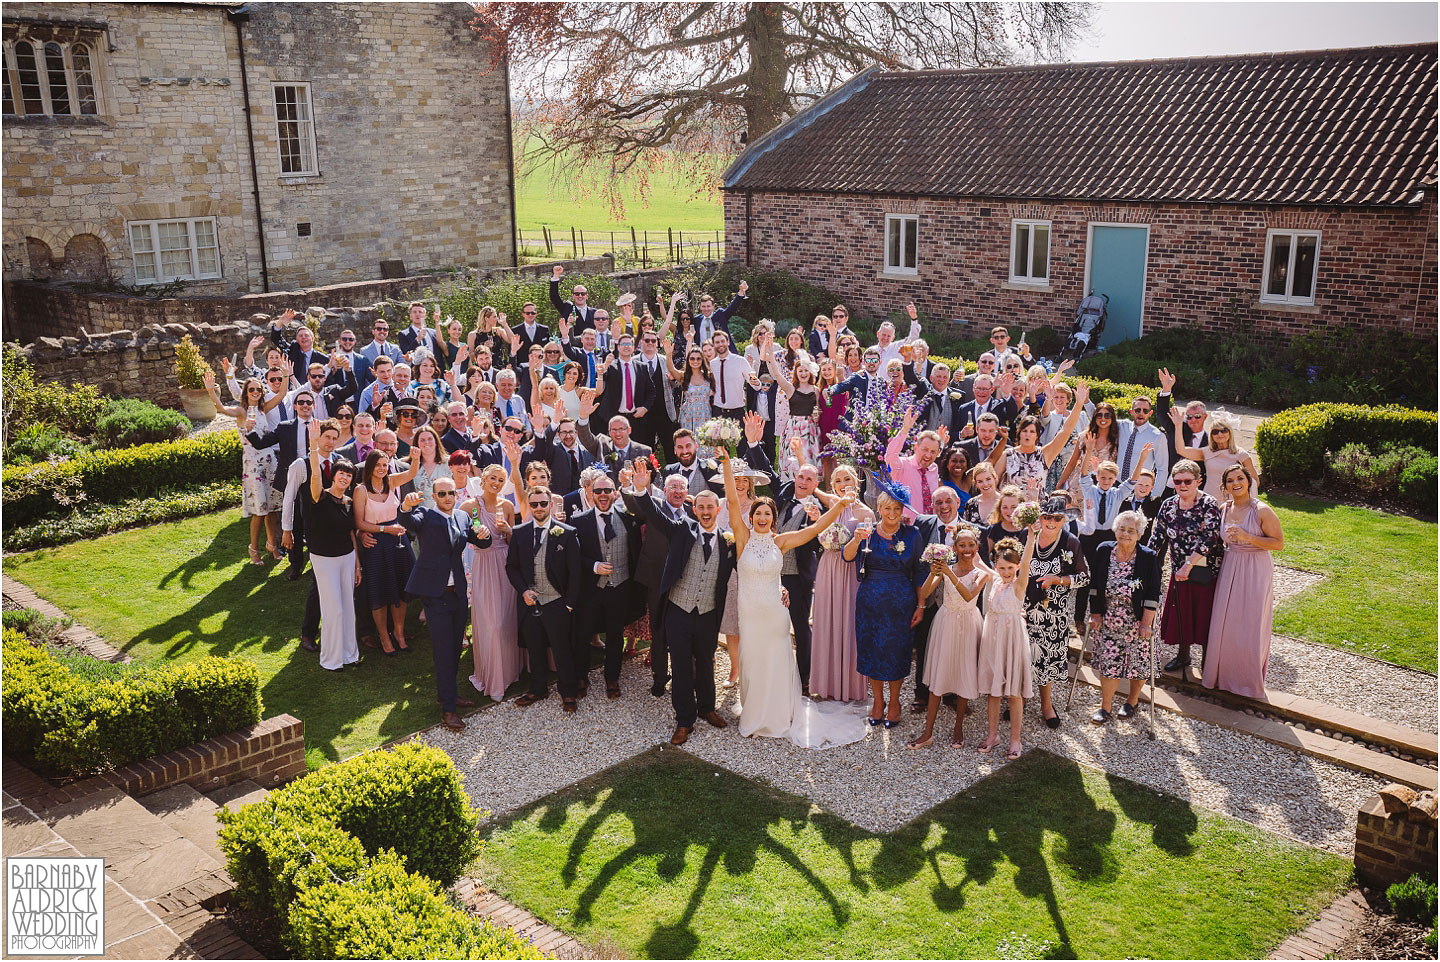 A photo of everyone at a spring wedding at Priory Cottages in Yorkshire, Priory Cottages Yorkshire, The Priory Syningthwaite, Yorkshire Barn wedding venues